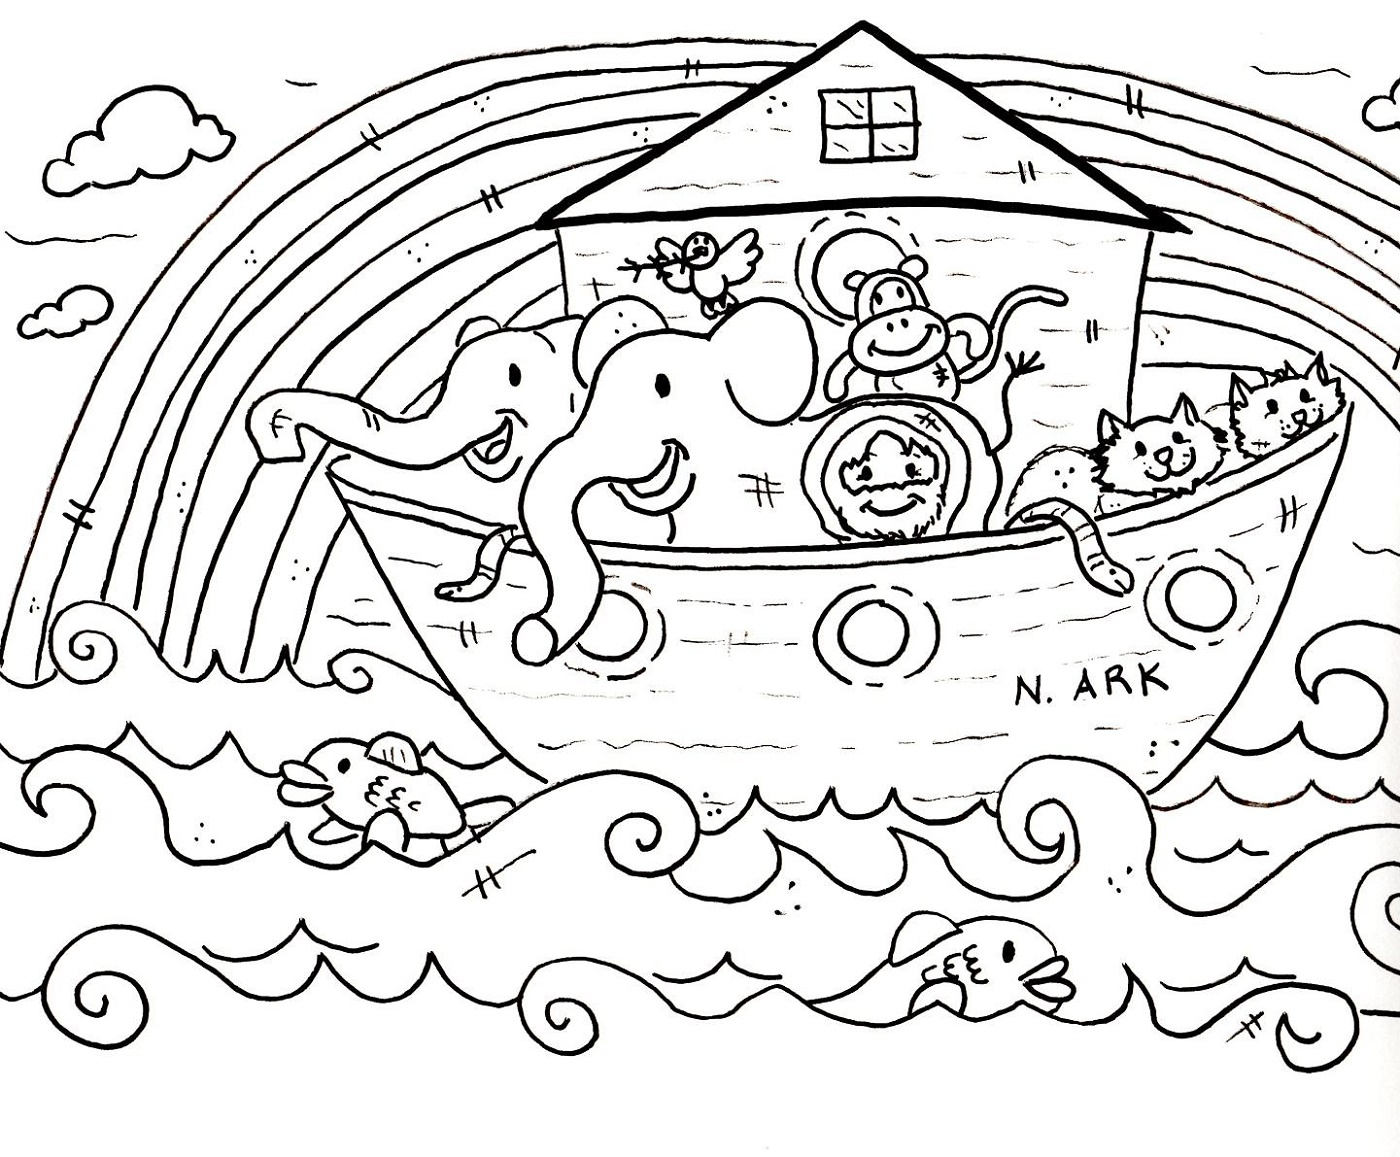 Noah's Ark Coloring Page For Kids